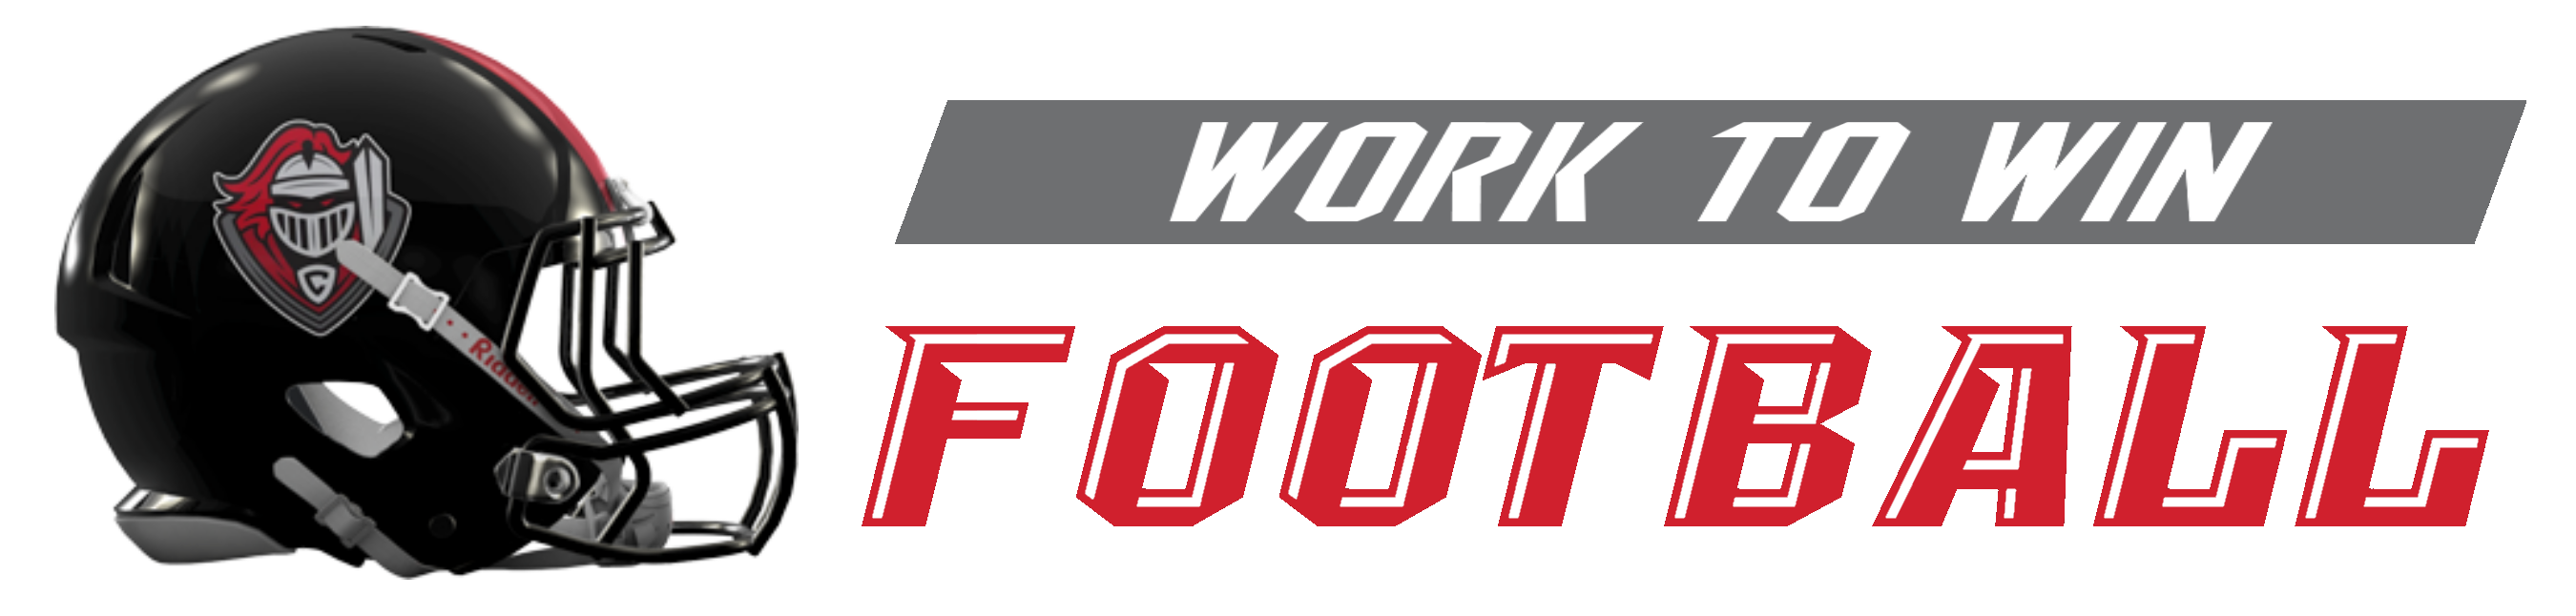 WorktoWinFootball